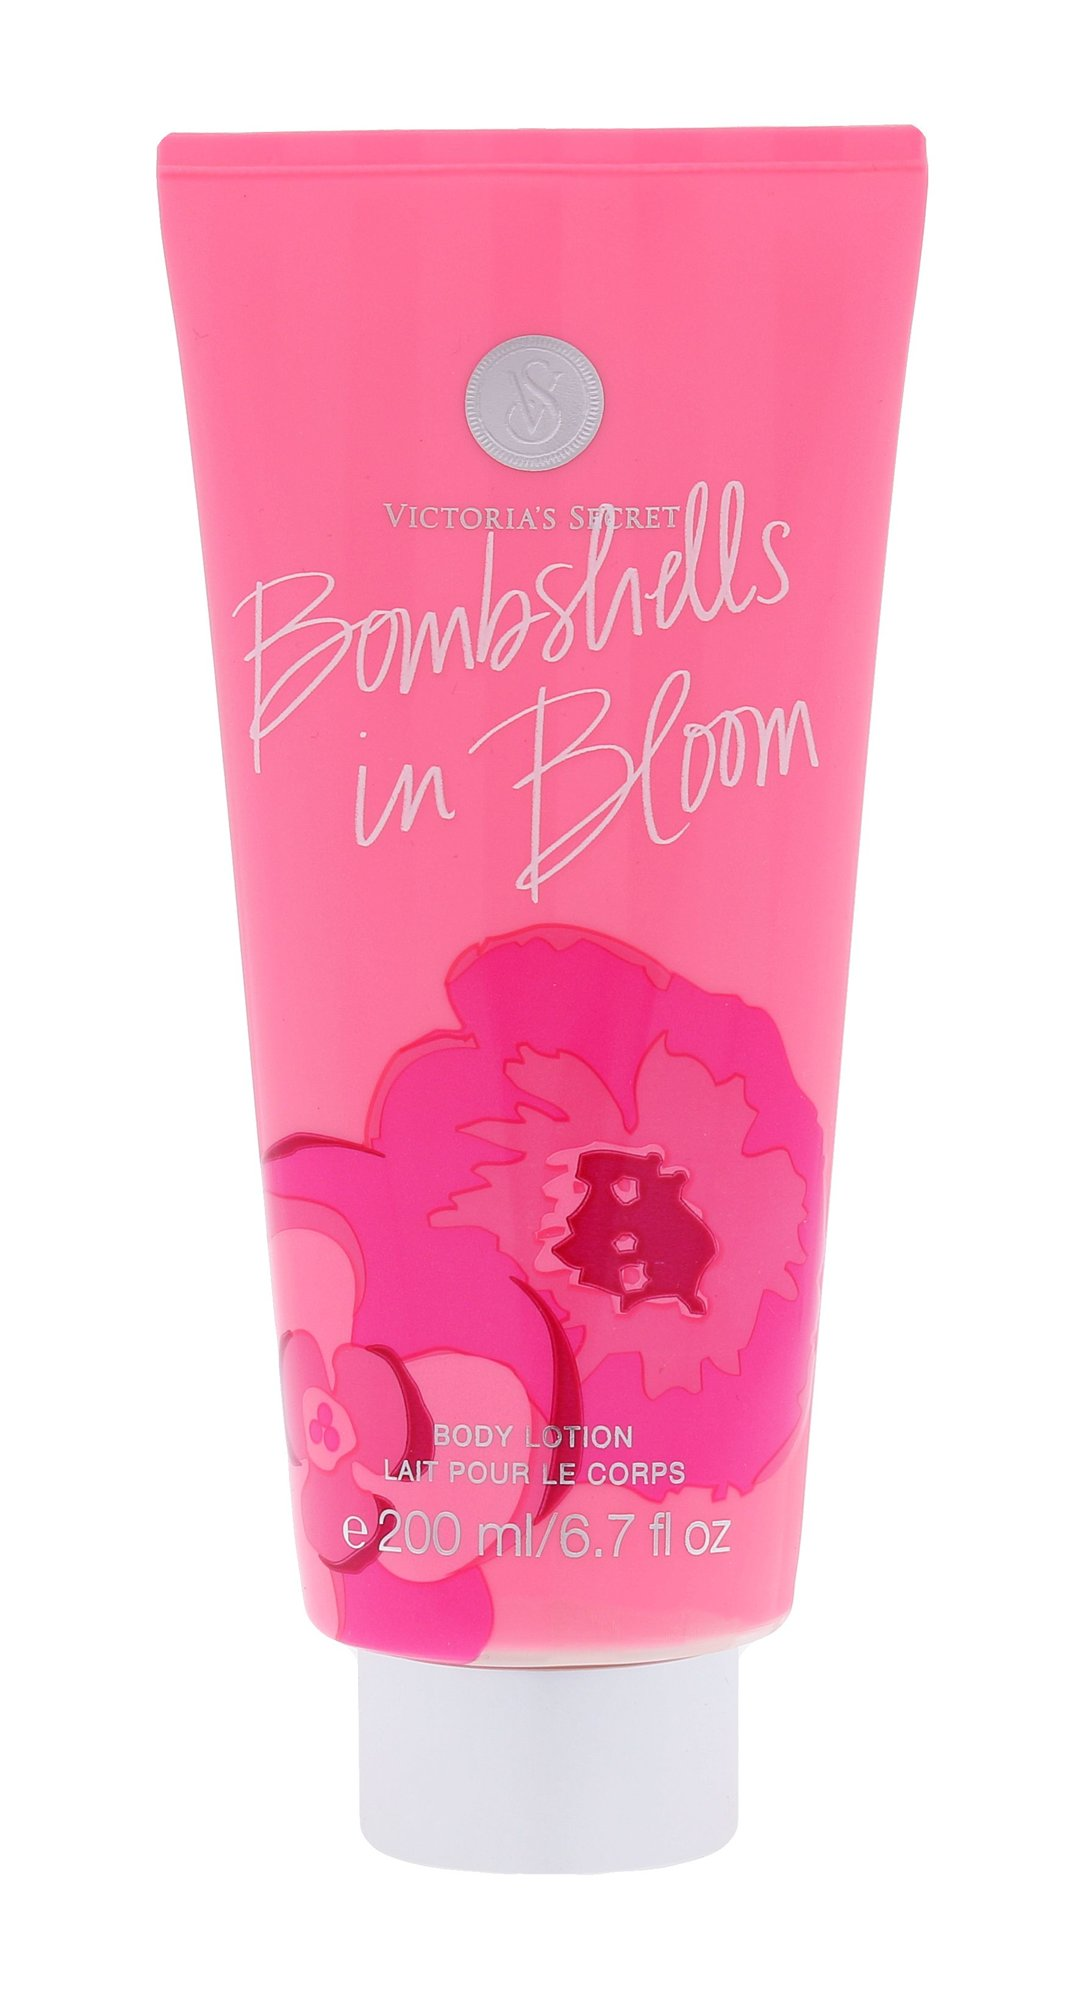 Victoria´s Secret Bombshells In Bloom Body lotion 200ml